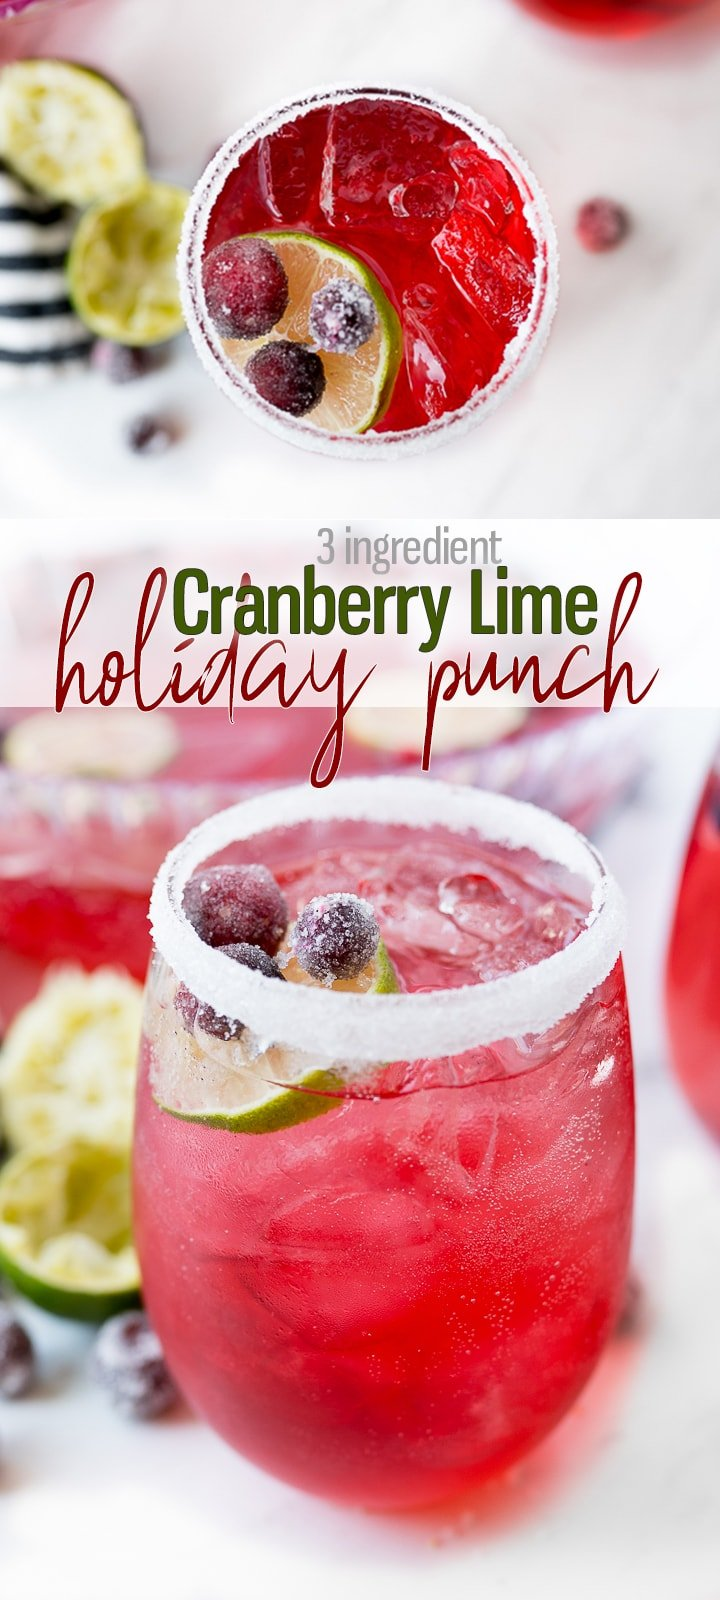 Holiday Punch Recipe Pin Image